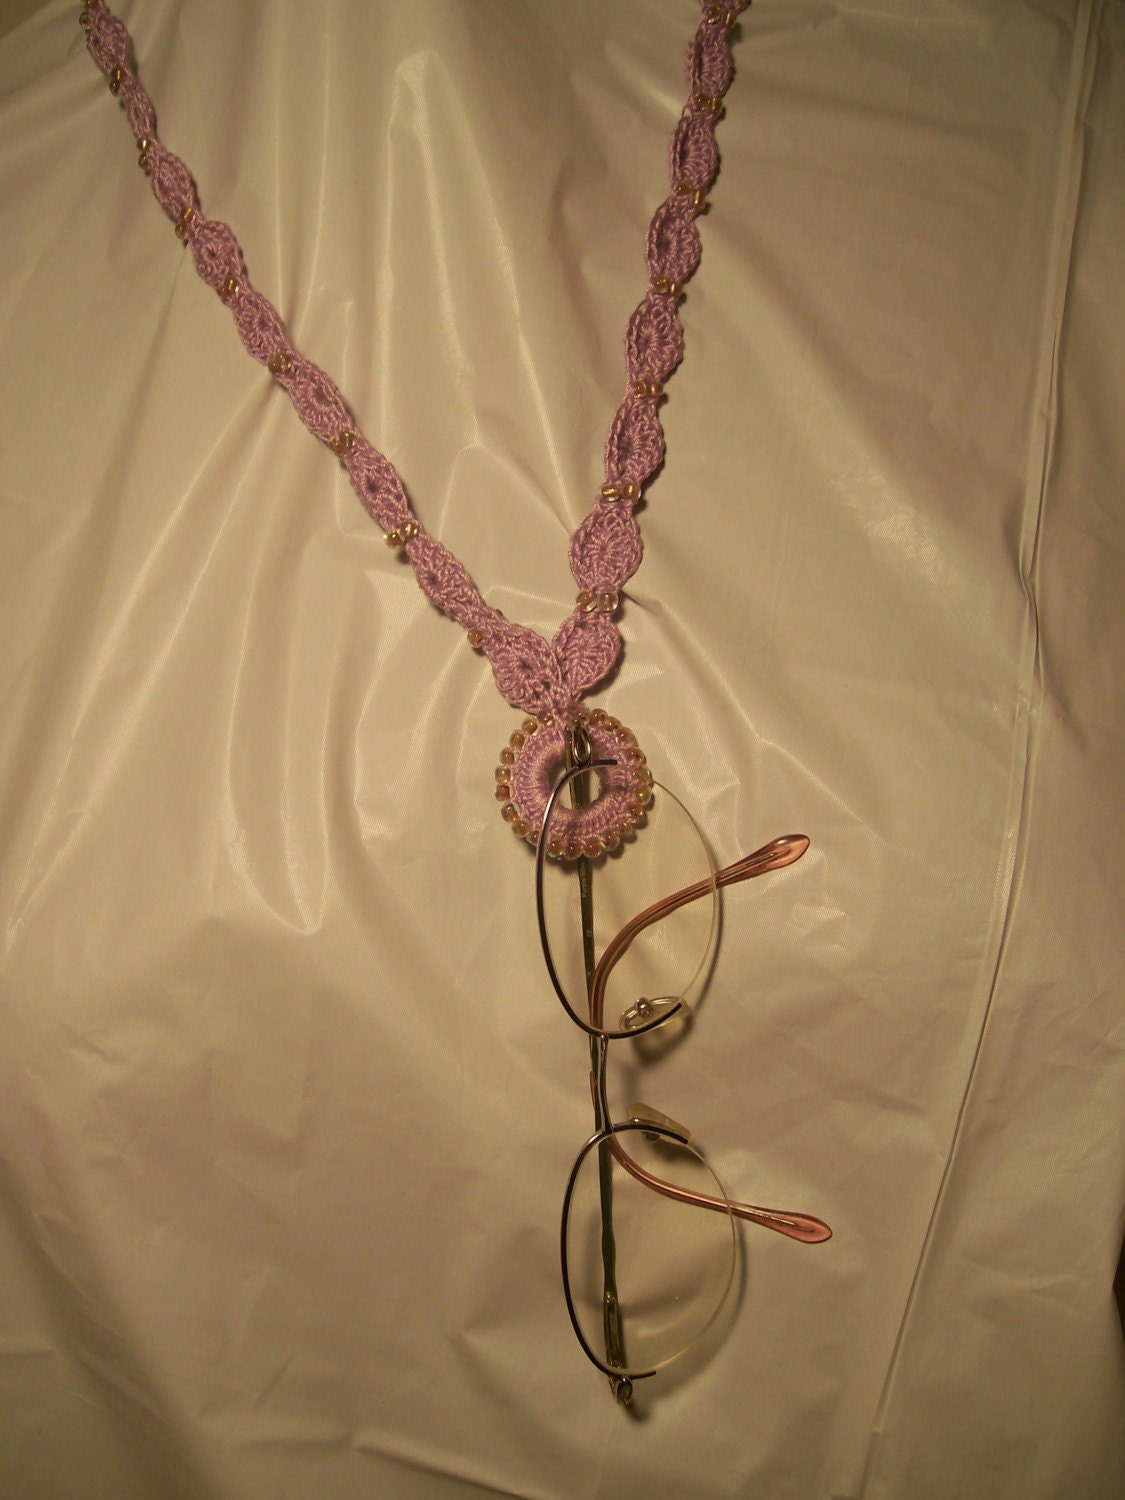 Necklace and eyeglass holder